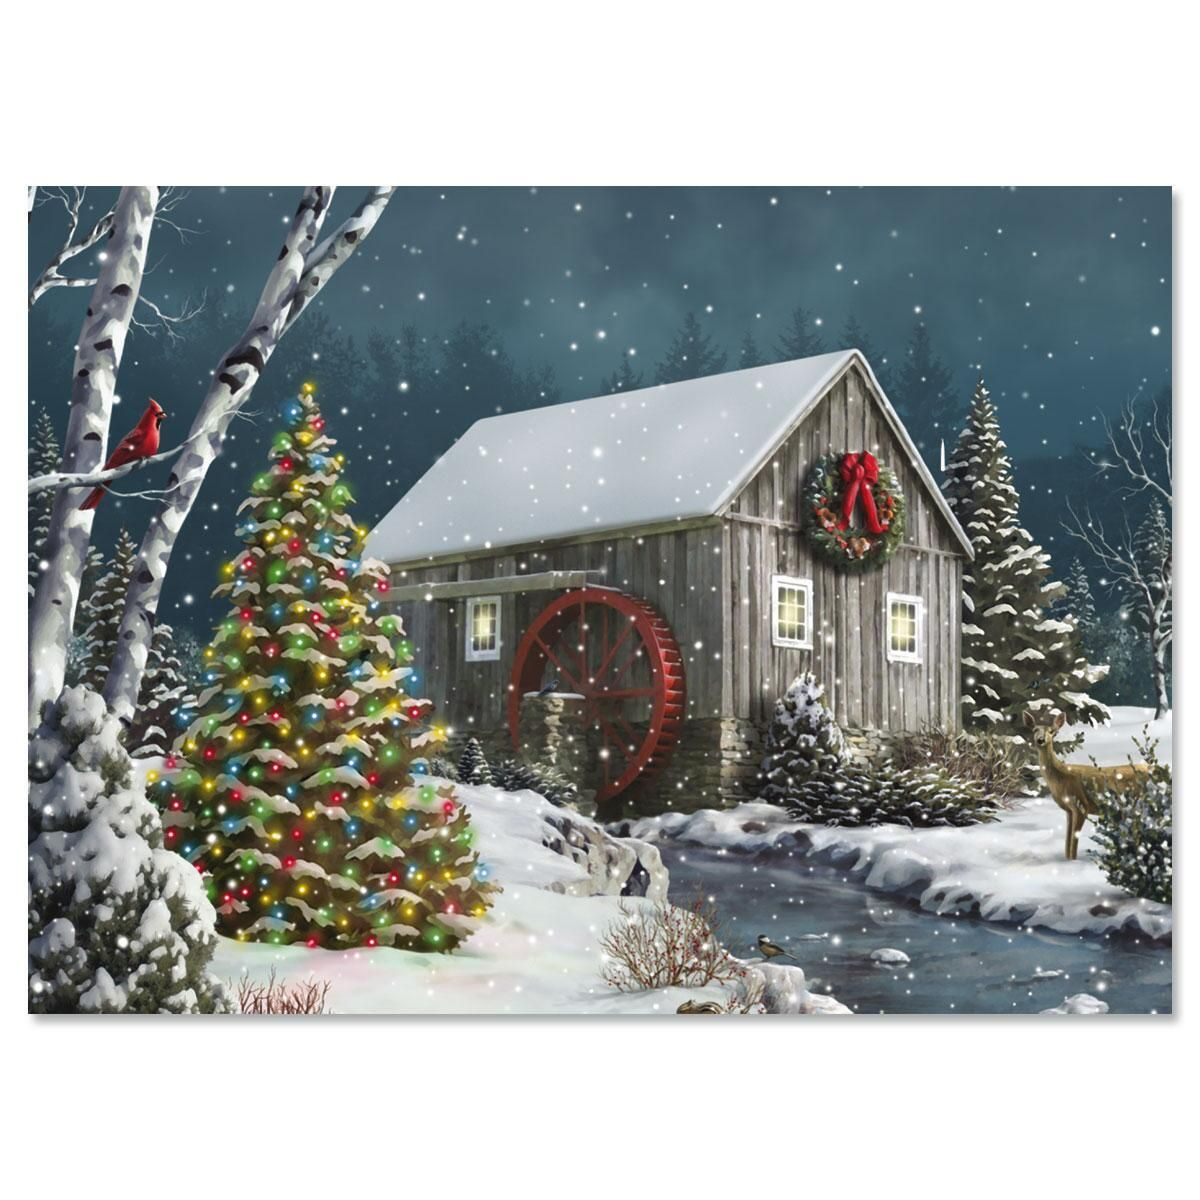 Falling Snow Nonpersonalized Christmas Cards - Set of 18